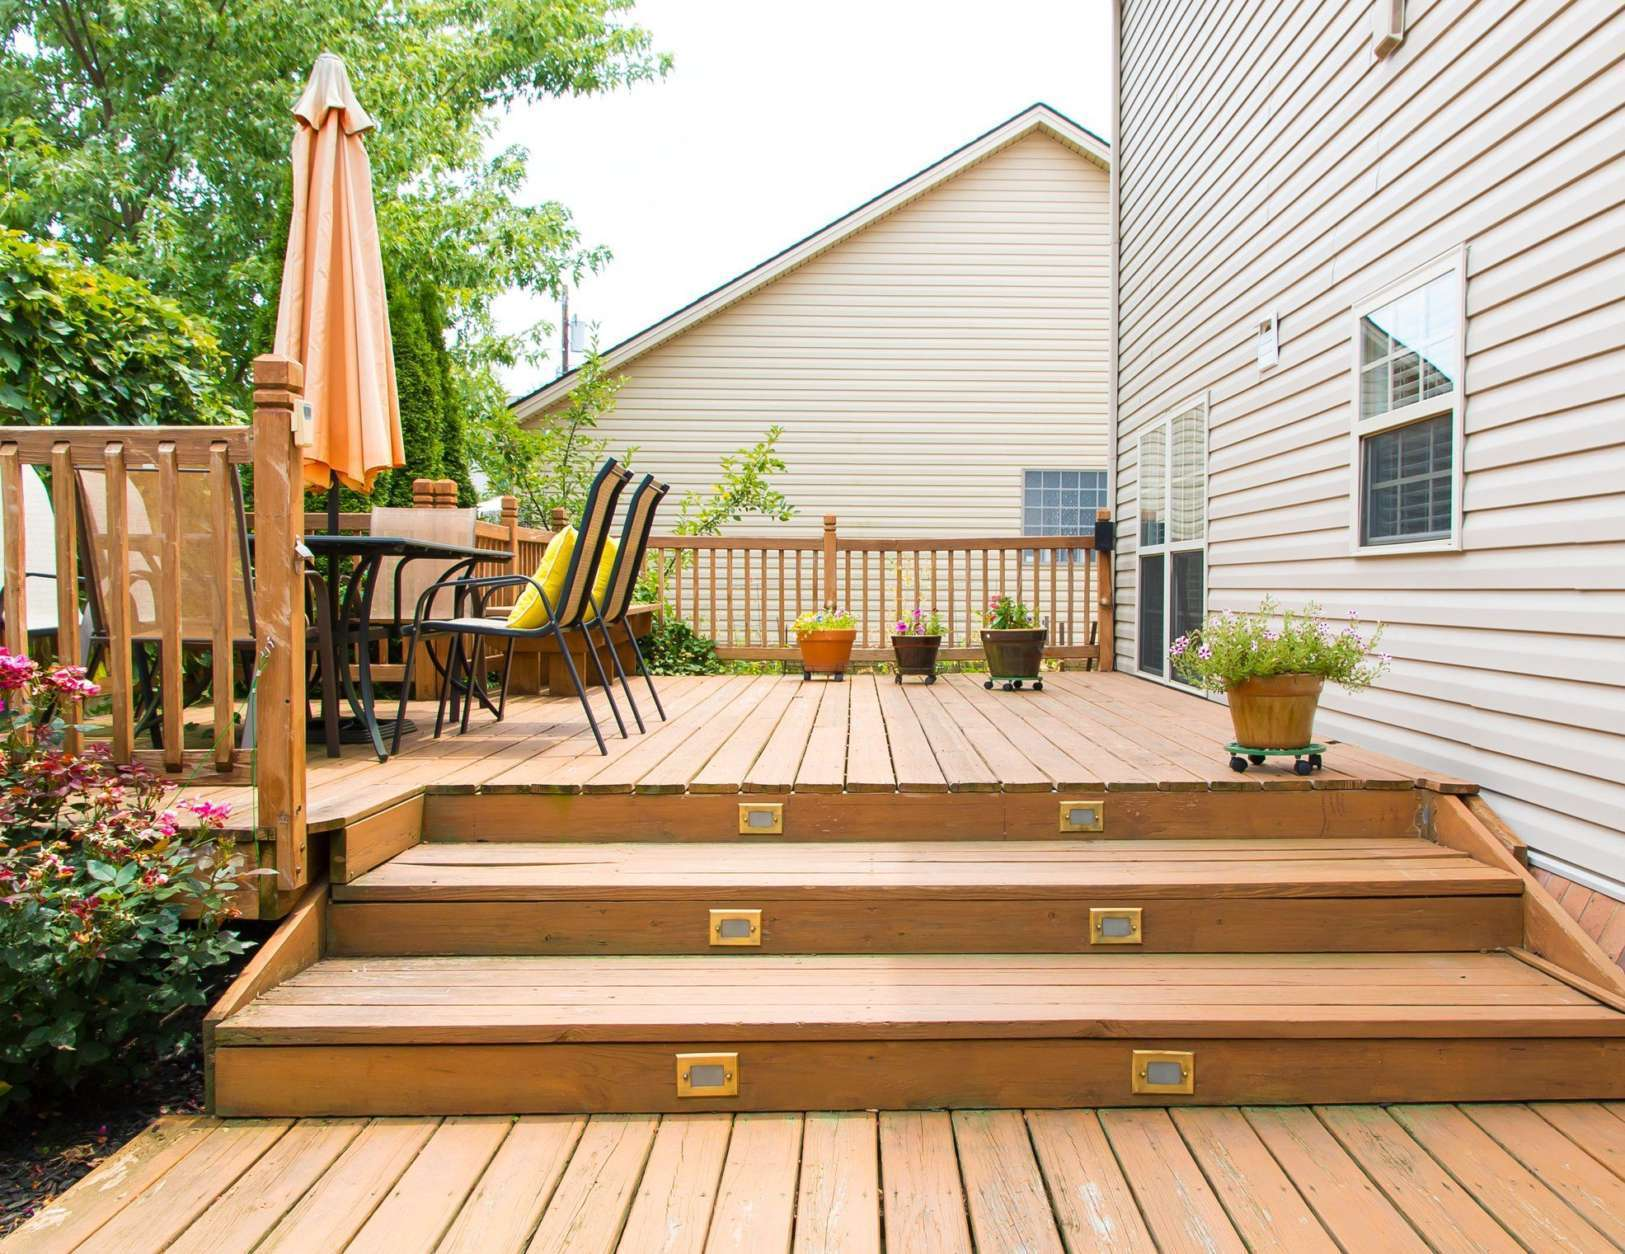 Adding shade to an outdoor seating area can make it more usable during the summer.